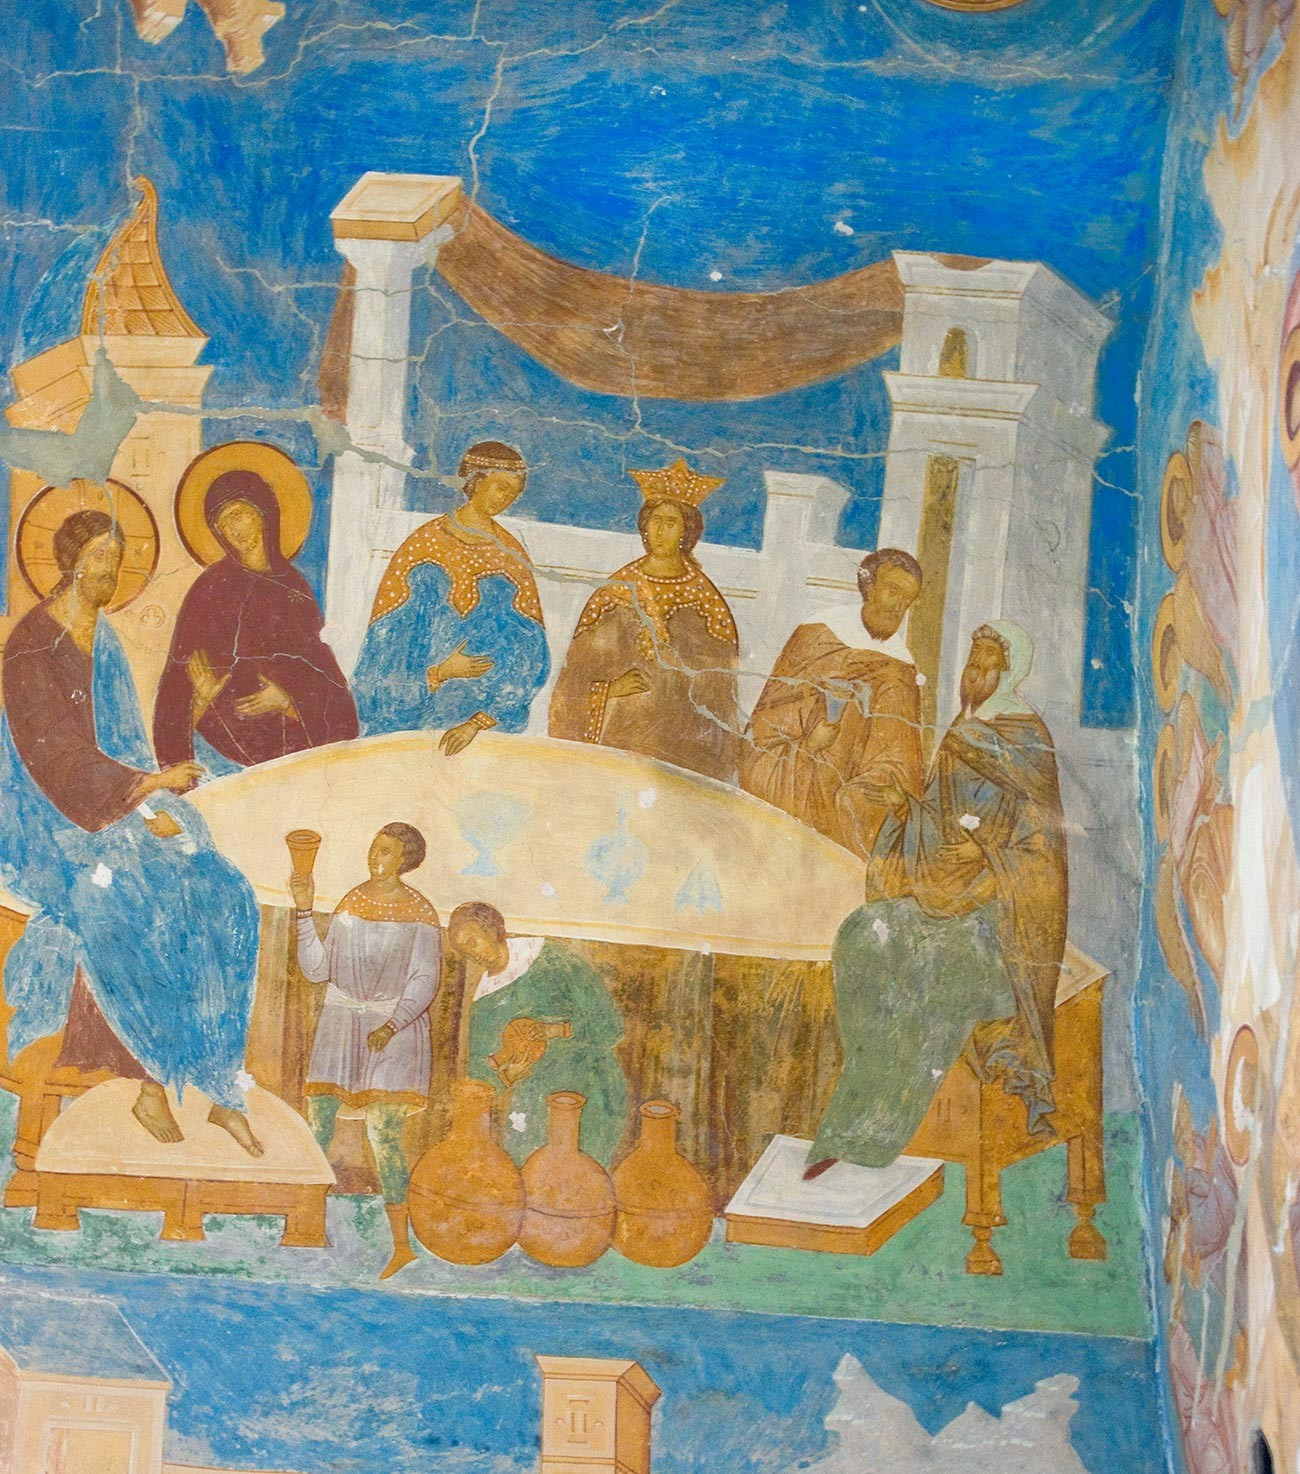 Cathedral of Nativity. South wall, vault arch, left side. Fresco of Christ at the Wedding in Cana. June 1, 2014